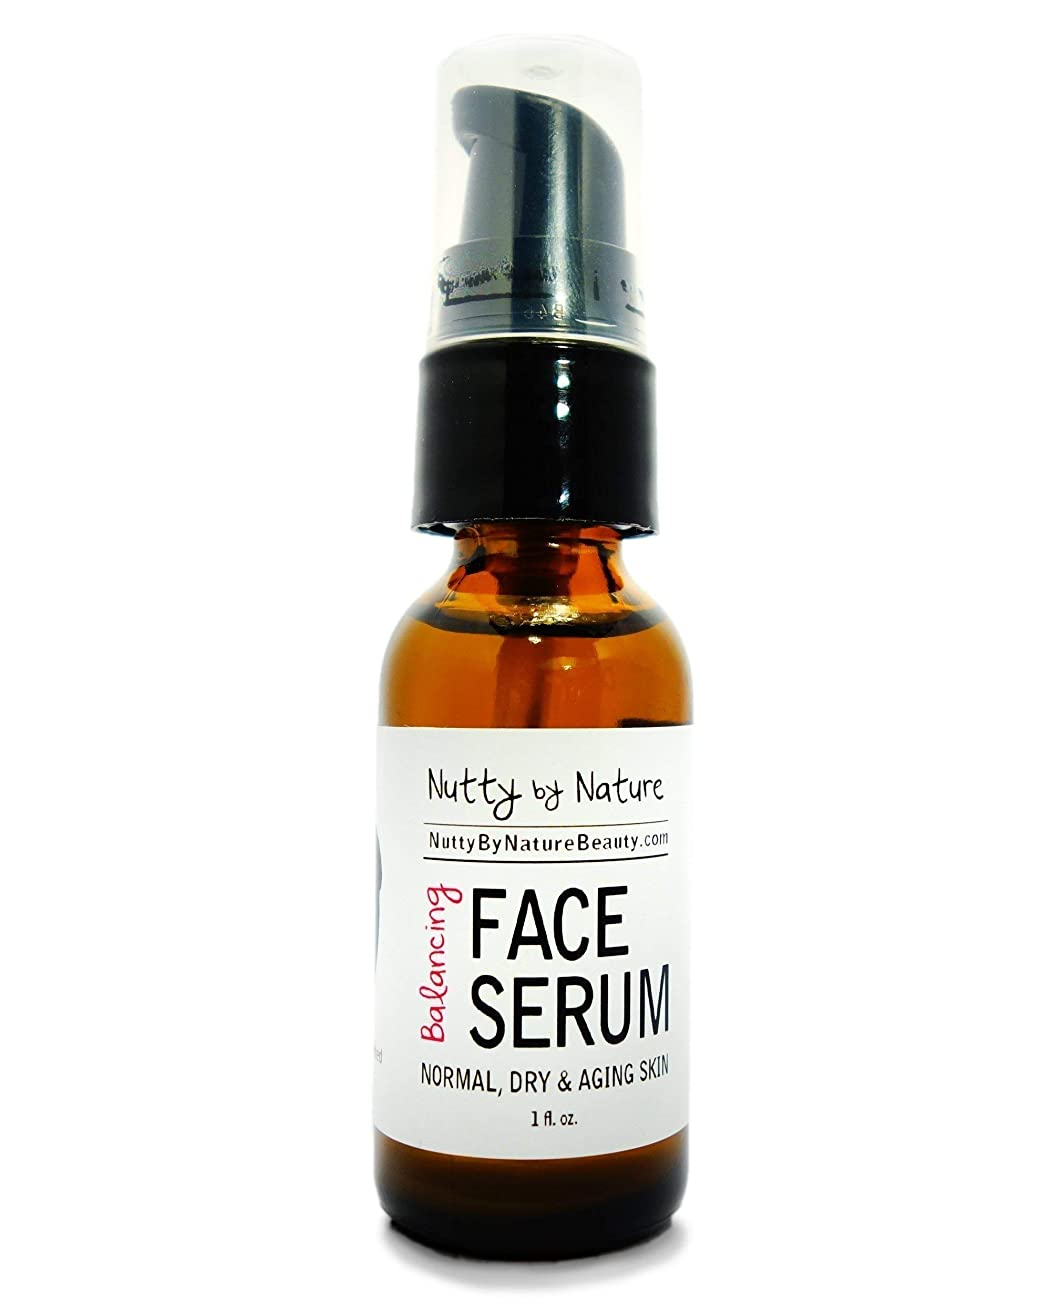 Nutty By Nature Balancing Face Serum - Normal, Dry and Aging Skin - 100% Natural